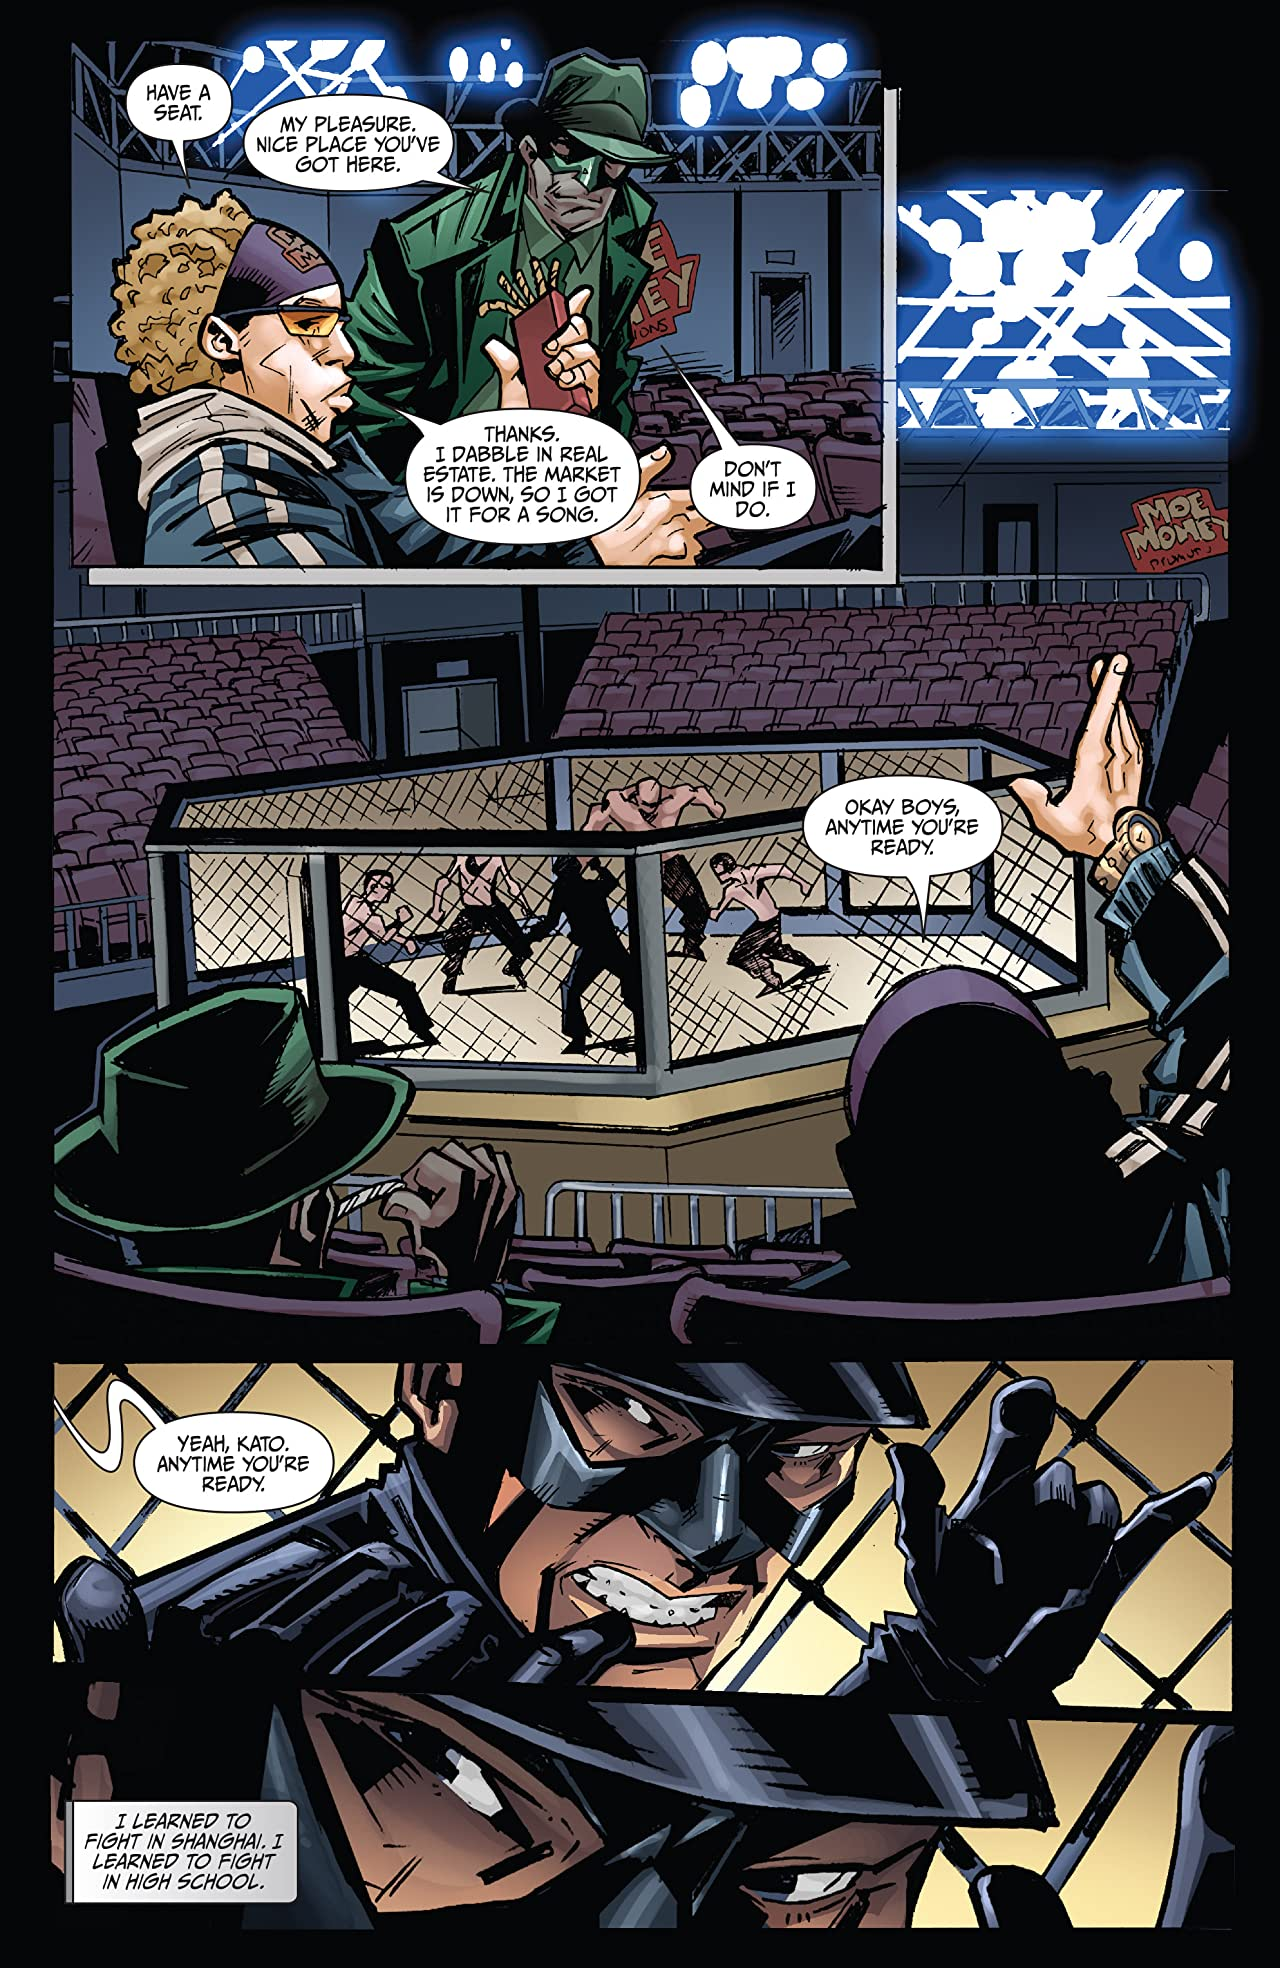 The Green Hornet: Parallel Lives #2